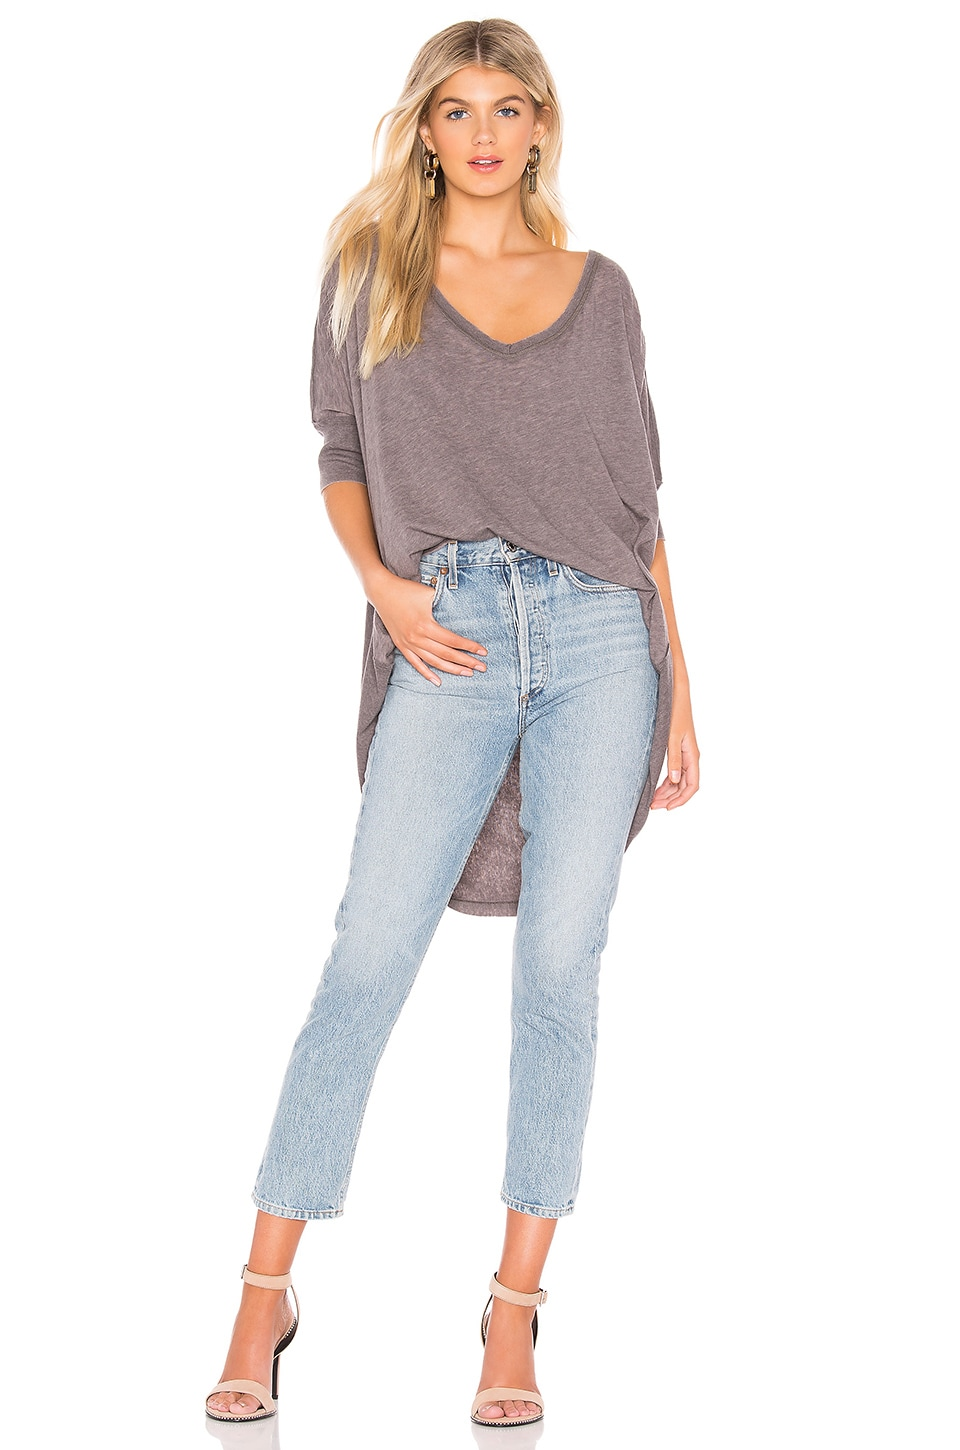 Free People Accessories Catch Waves Tee